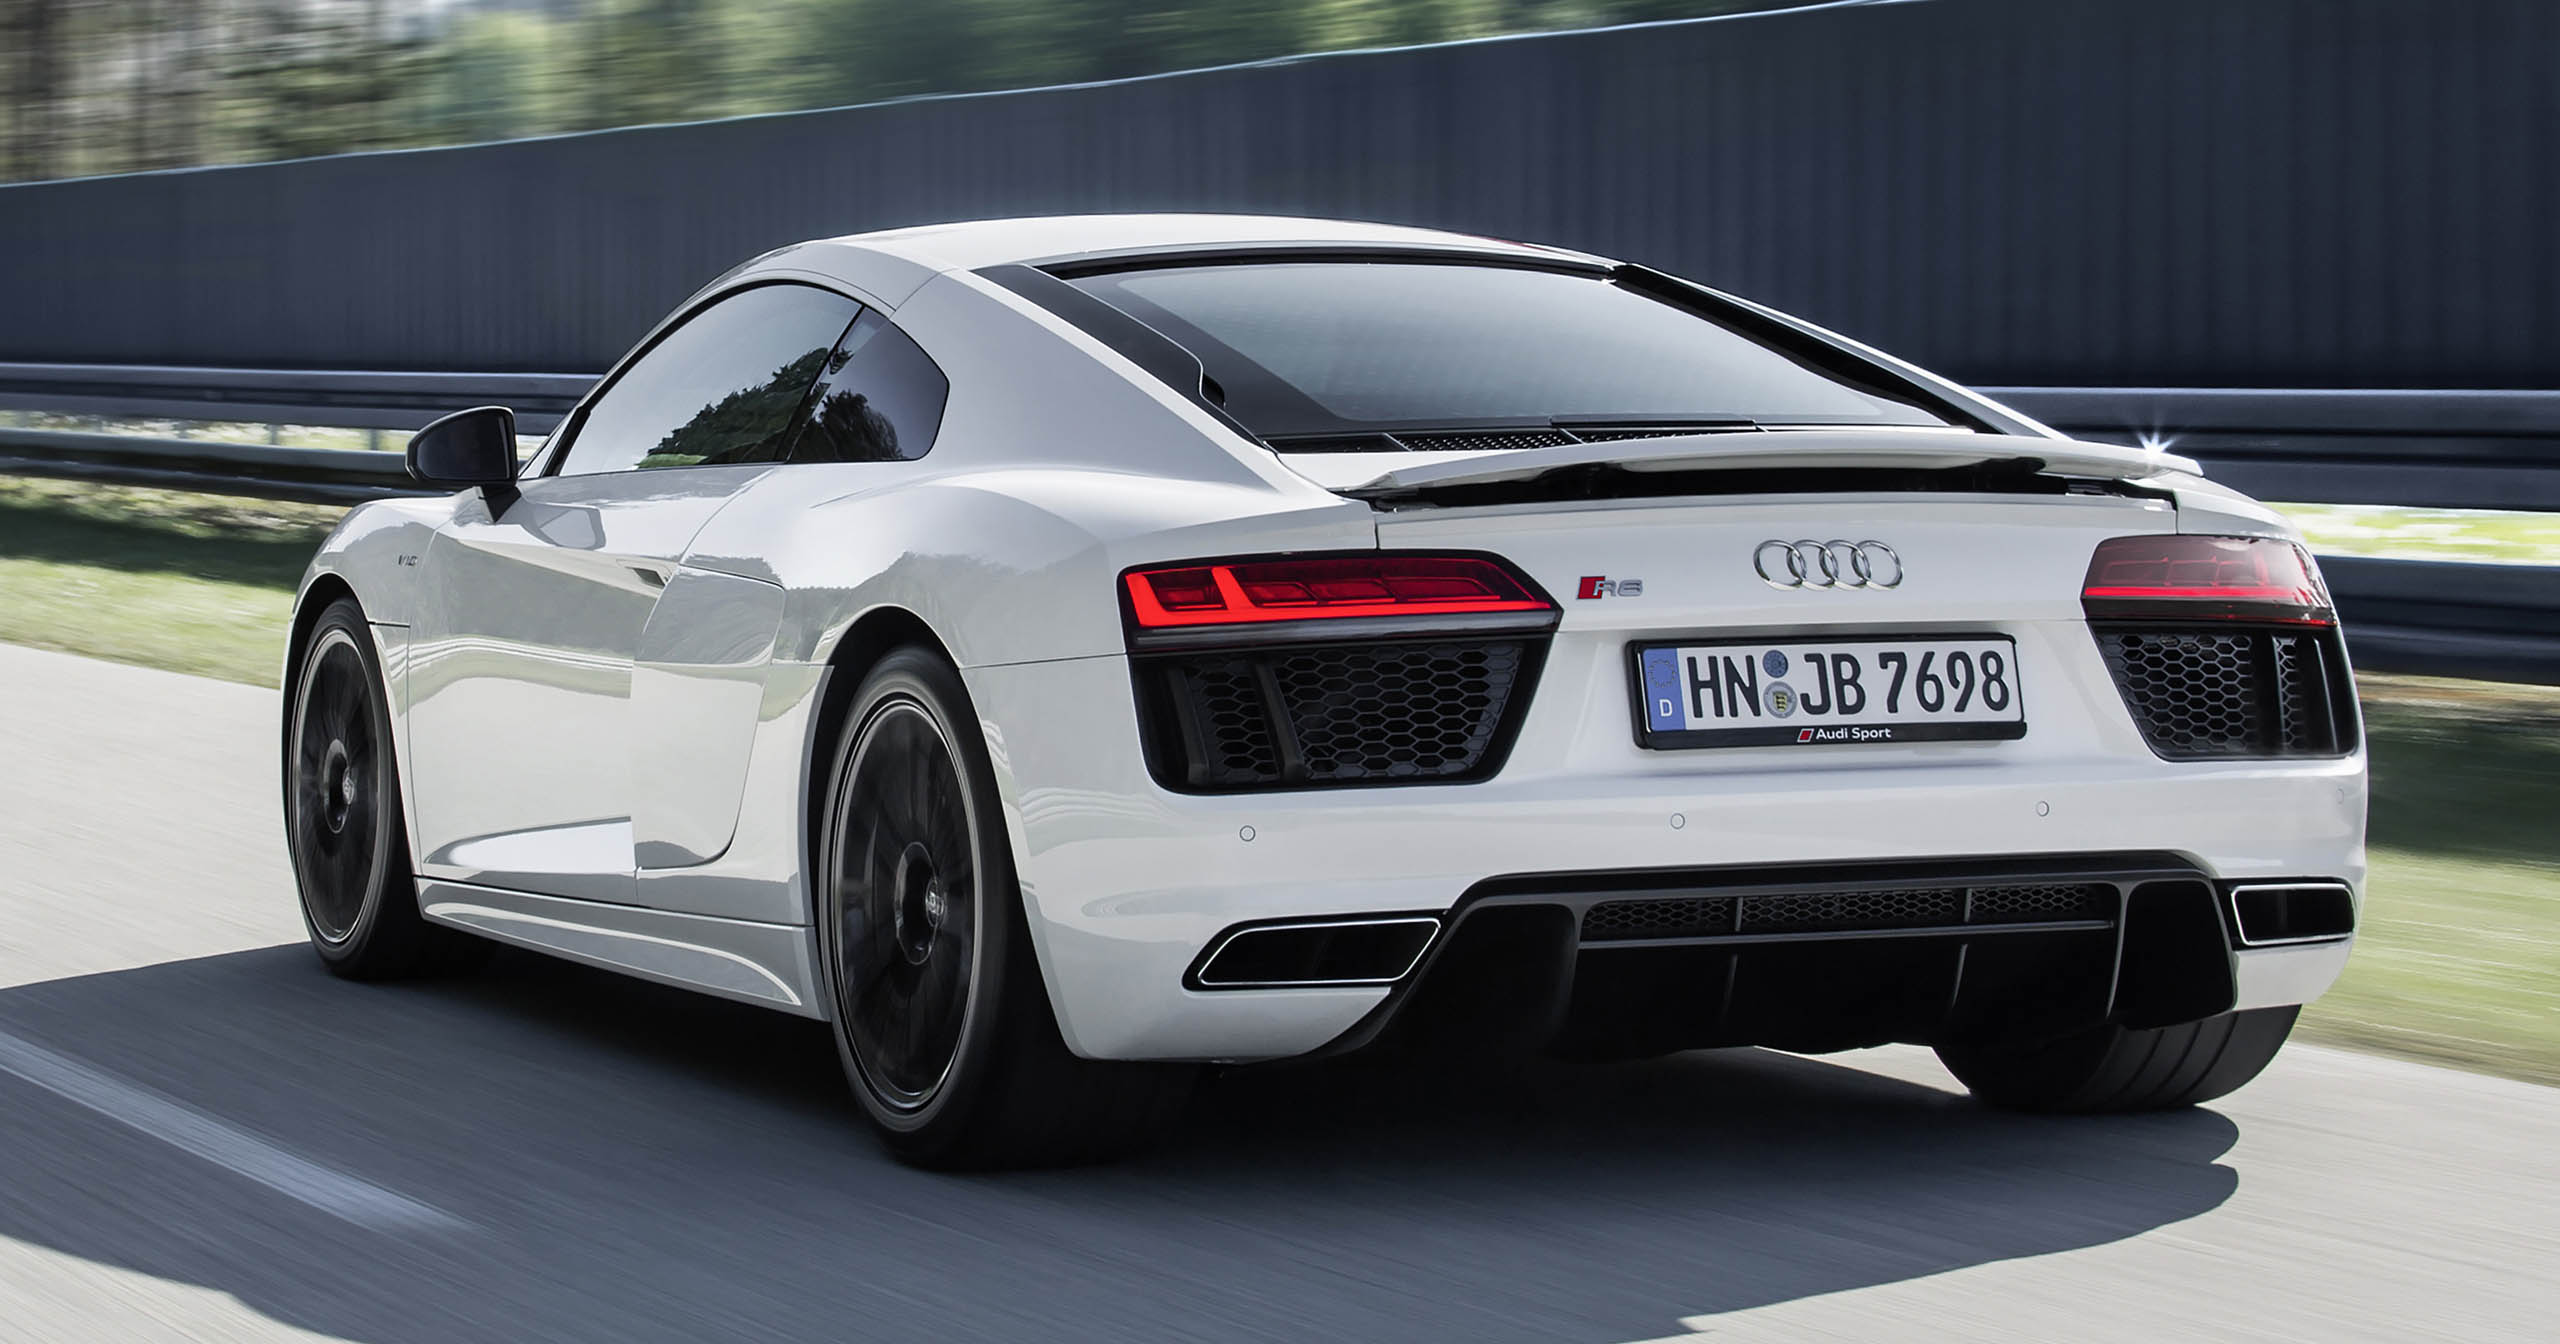 While The Engine May Be The Same, The R8 V10 RWS Coupe Is 50 Kg Lighter  Than The Regular R8, Largely Thanks To The Removal Of AWD Bits Like The  Propshaft, ...